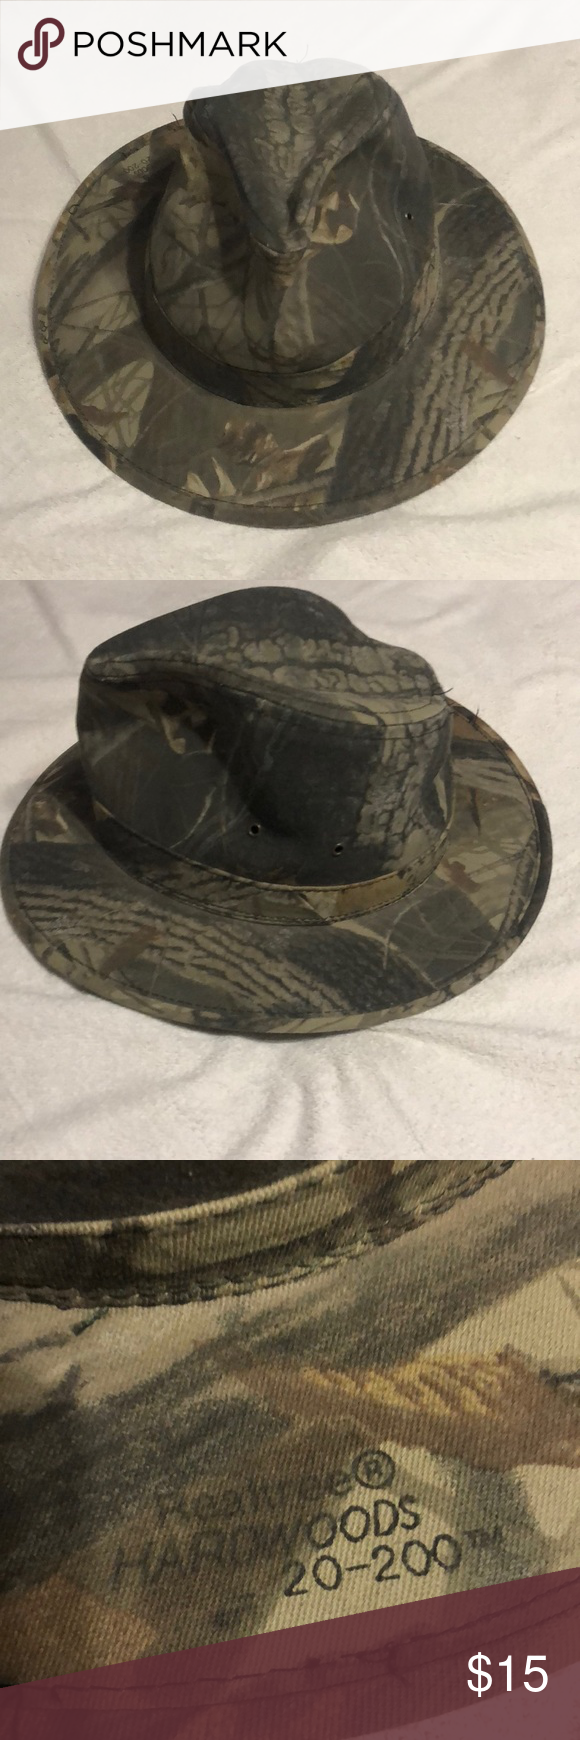 Realtree HARDWOODS. 20 200 size Lg camouflage hat Realtree